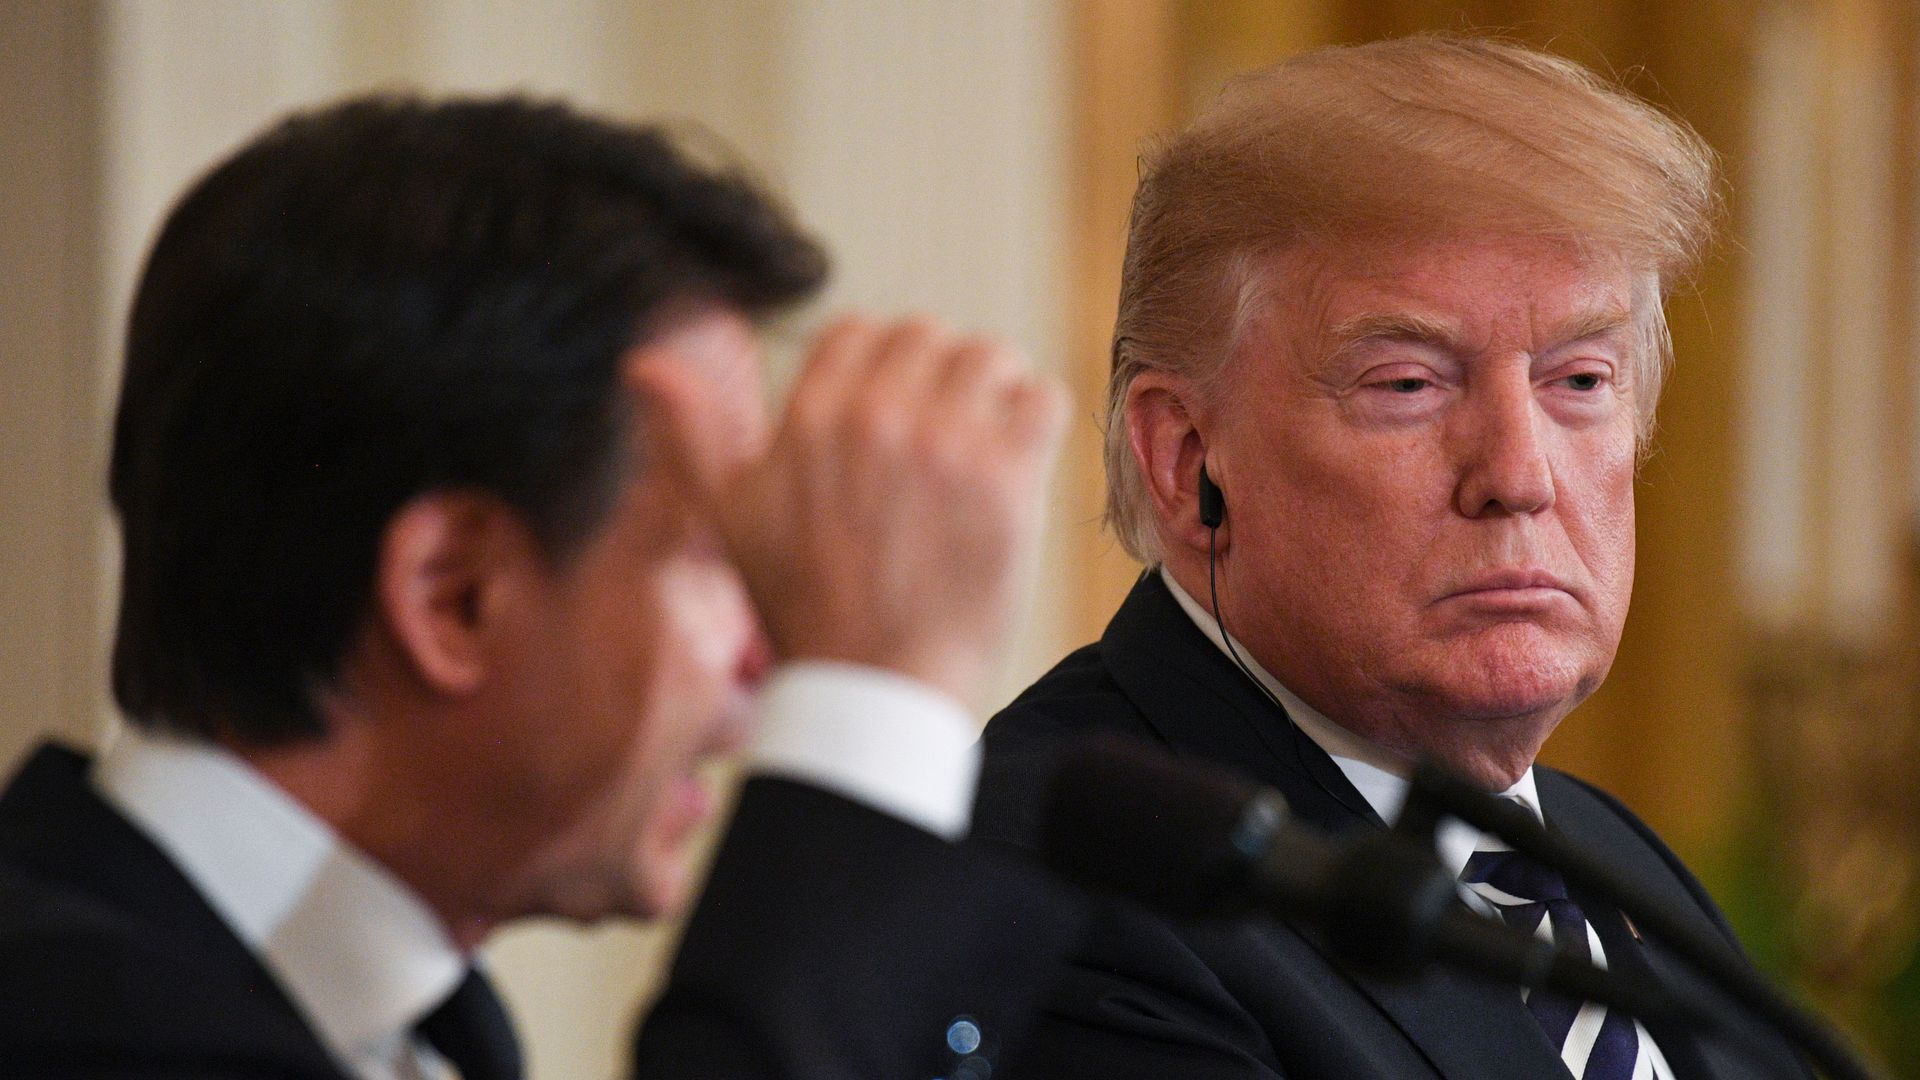 President Trump listens during a joint press conference with Italian Prime Minister Giuseppe Conte in the East Room of the White House in Washington, DC, July 30, 2018.